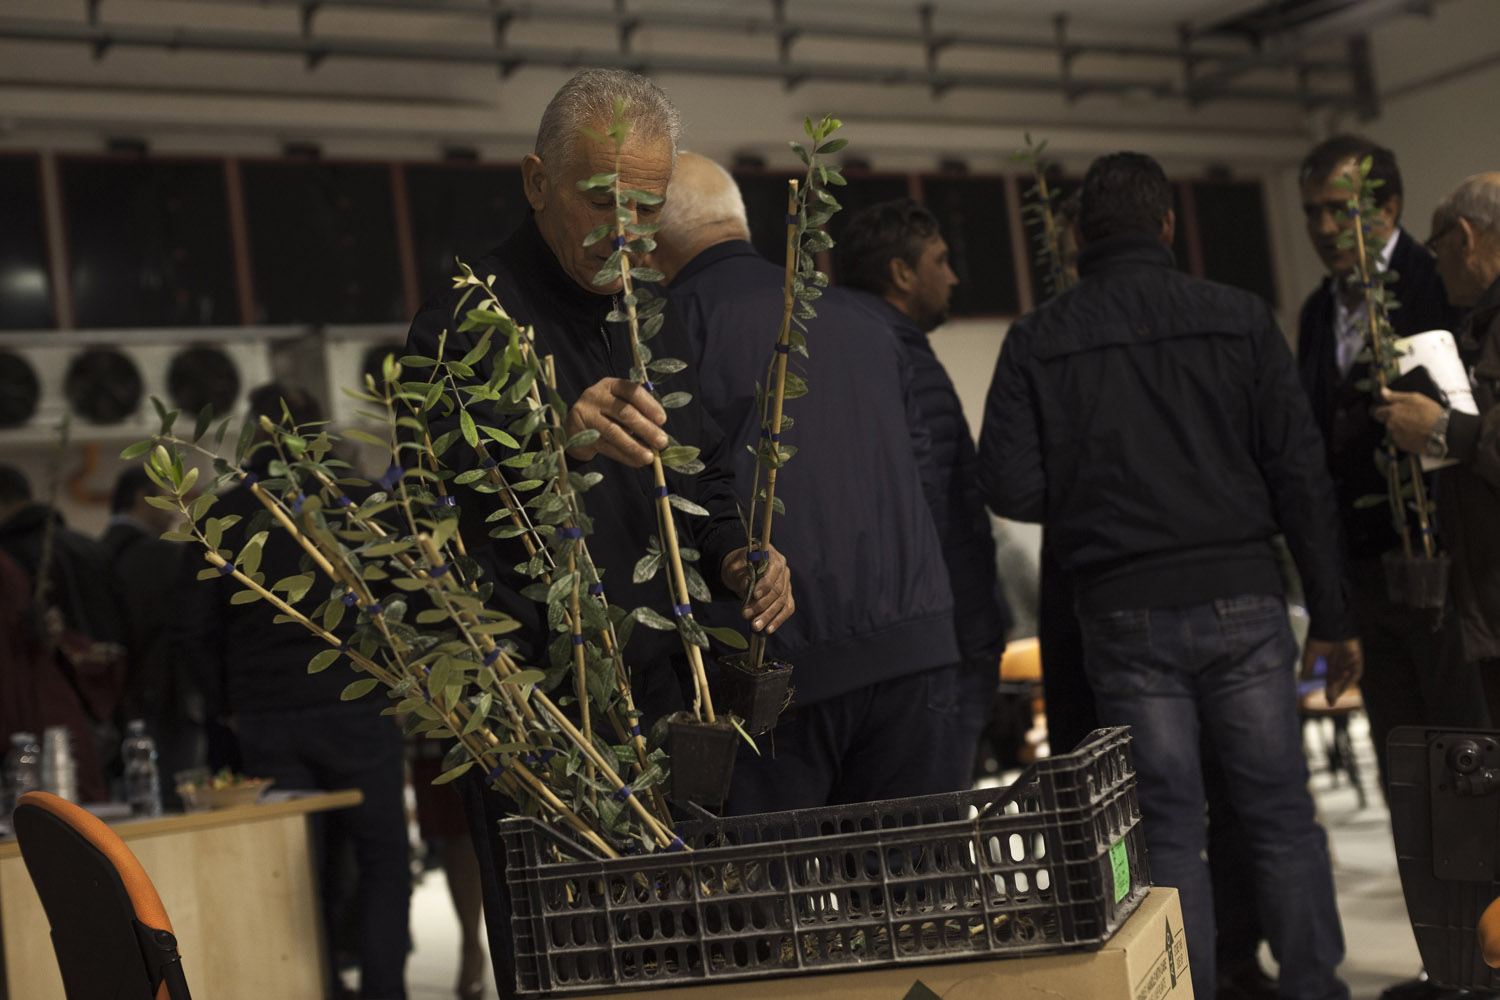 "A farmer takes a free sapling of the FS-17 ""Favolosa"" (fabulous) olive variety, at an event meant to adverthise this new variety which was developed for super-intensive implants and shows resistance to the Xylella fastidiosa bacteria. (2019)"